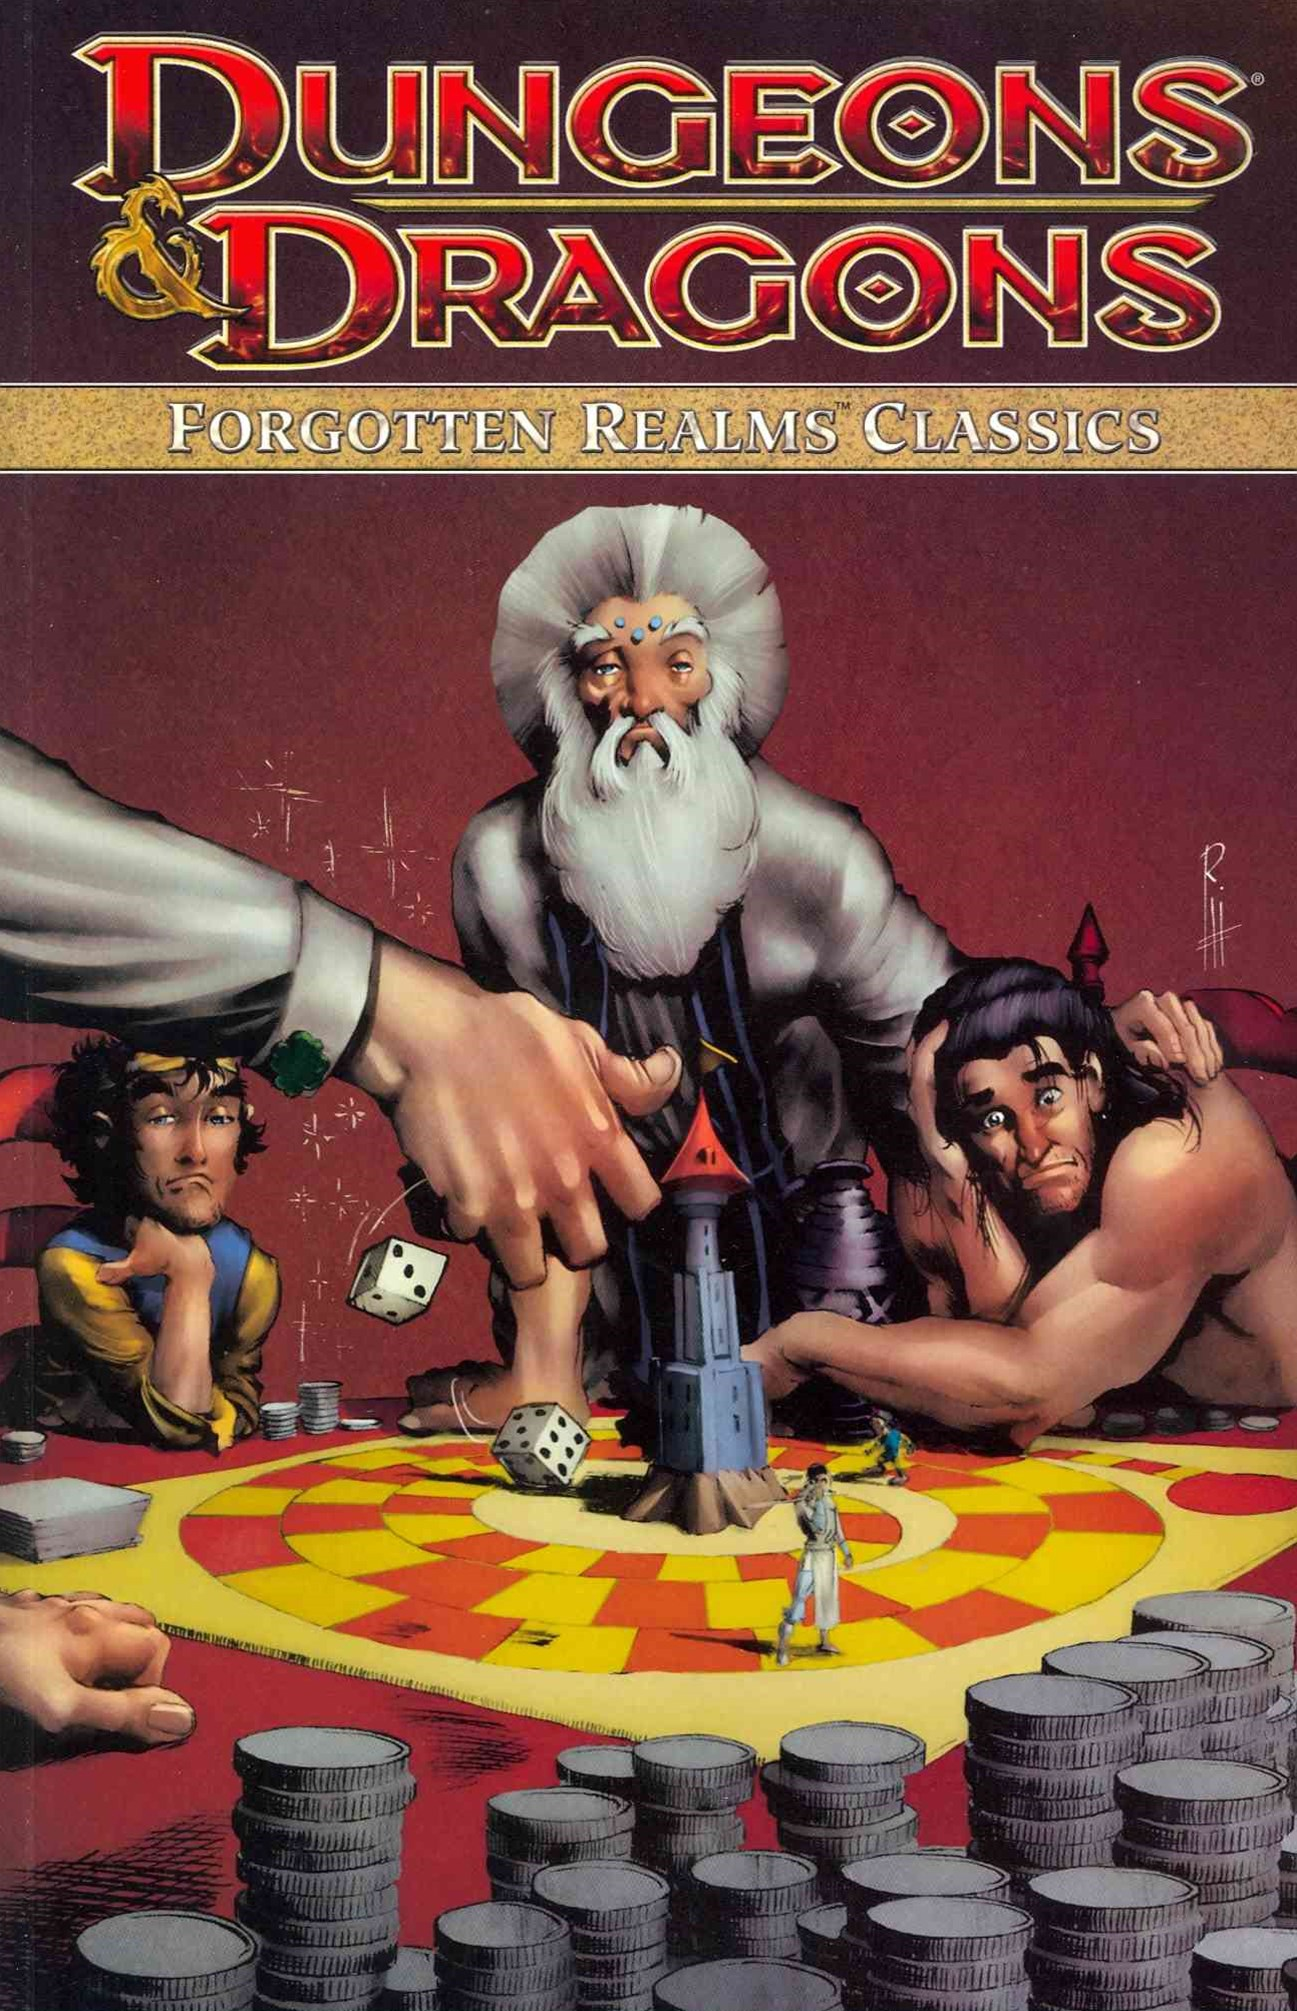 Dungeons and Dragons: Forgotten Realms Classics Volume 4